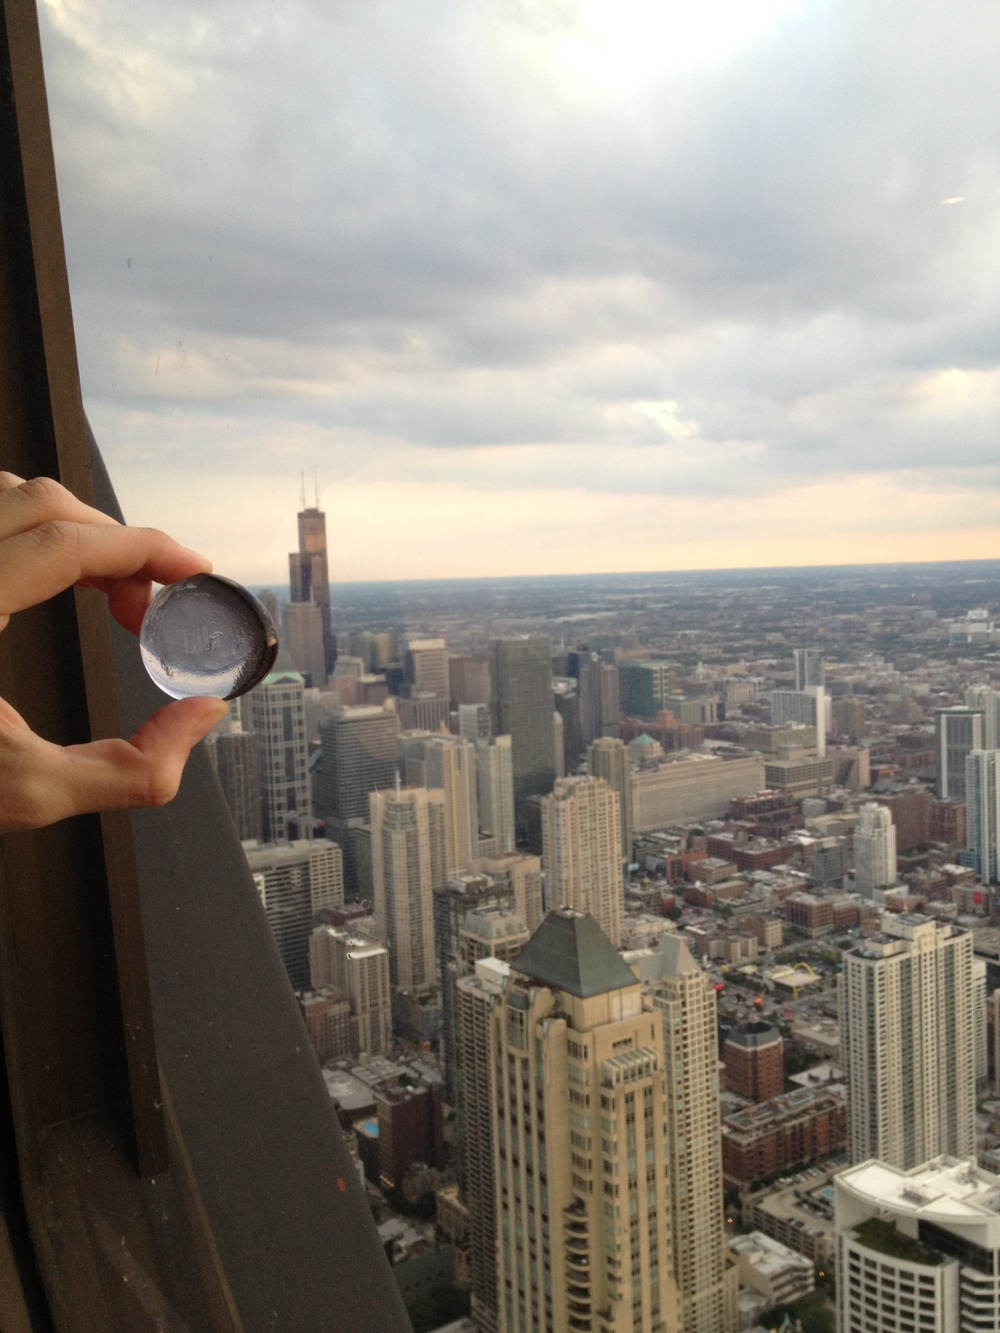 Lila stone at the 95th floor of the Hancock Building